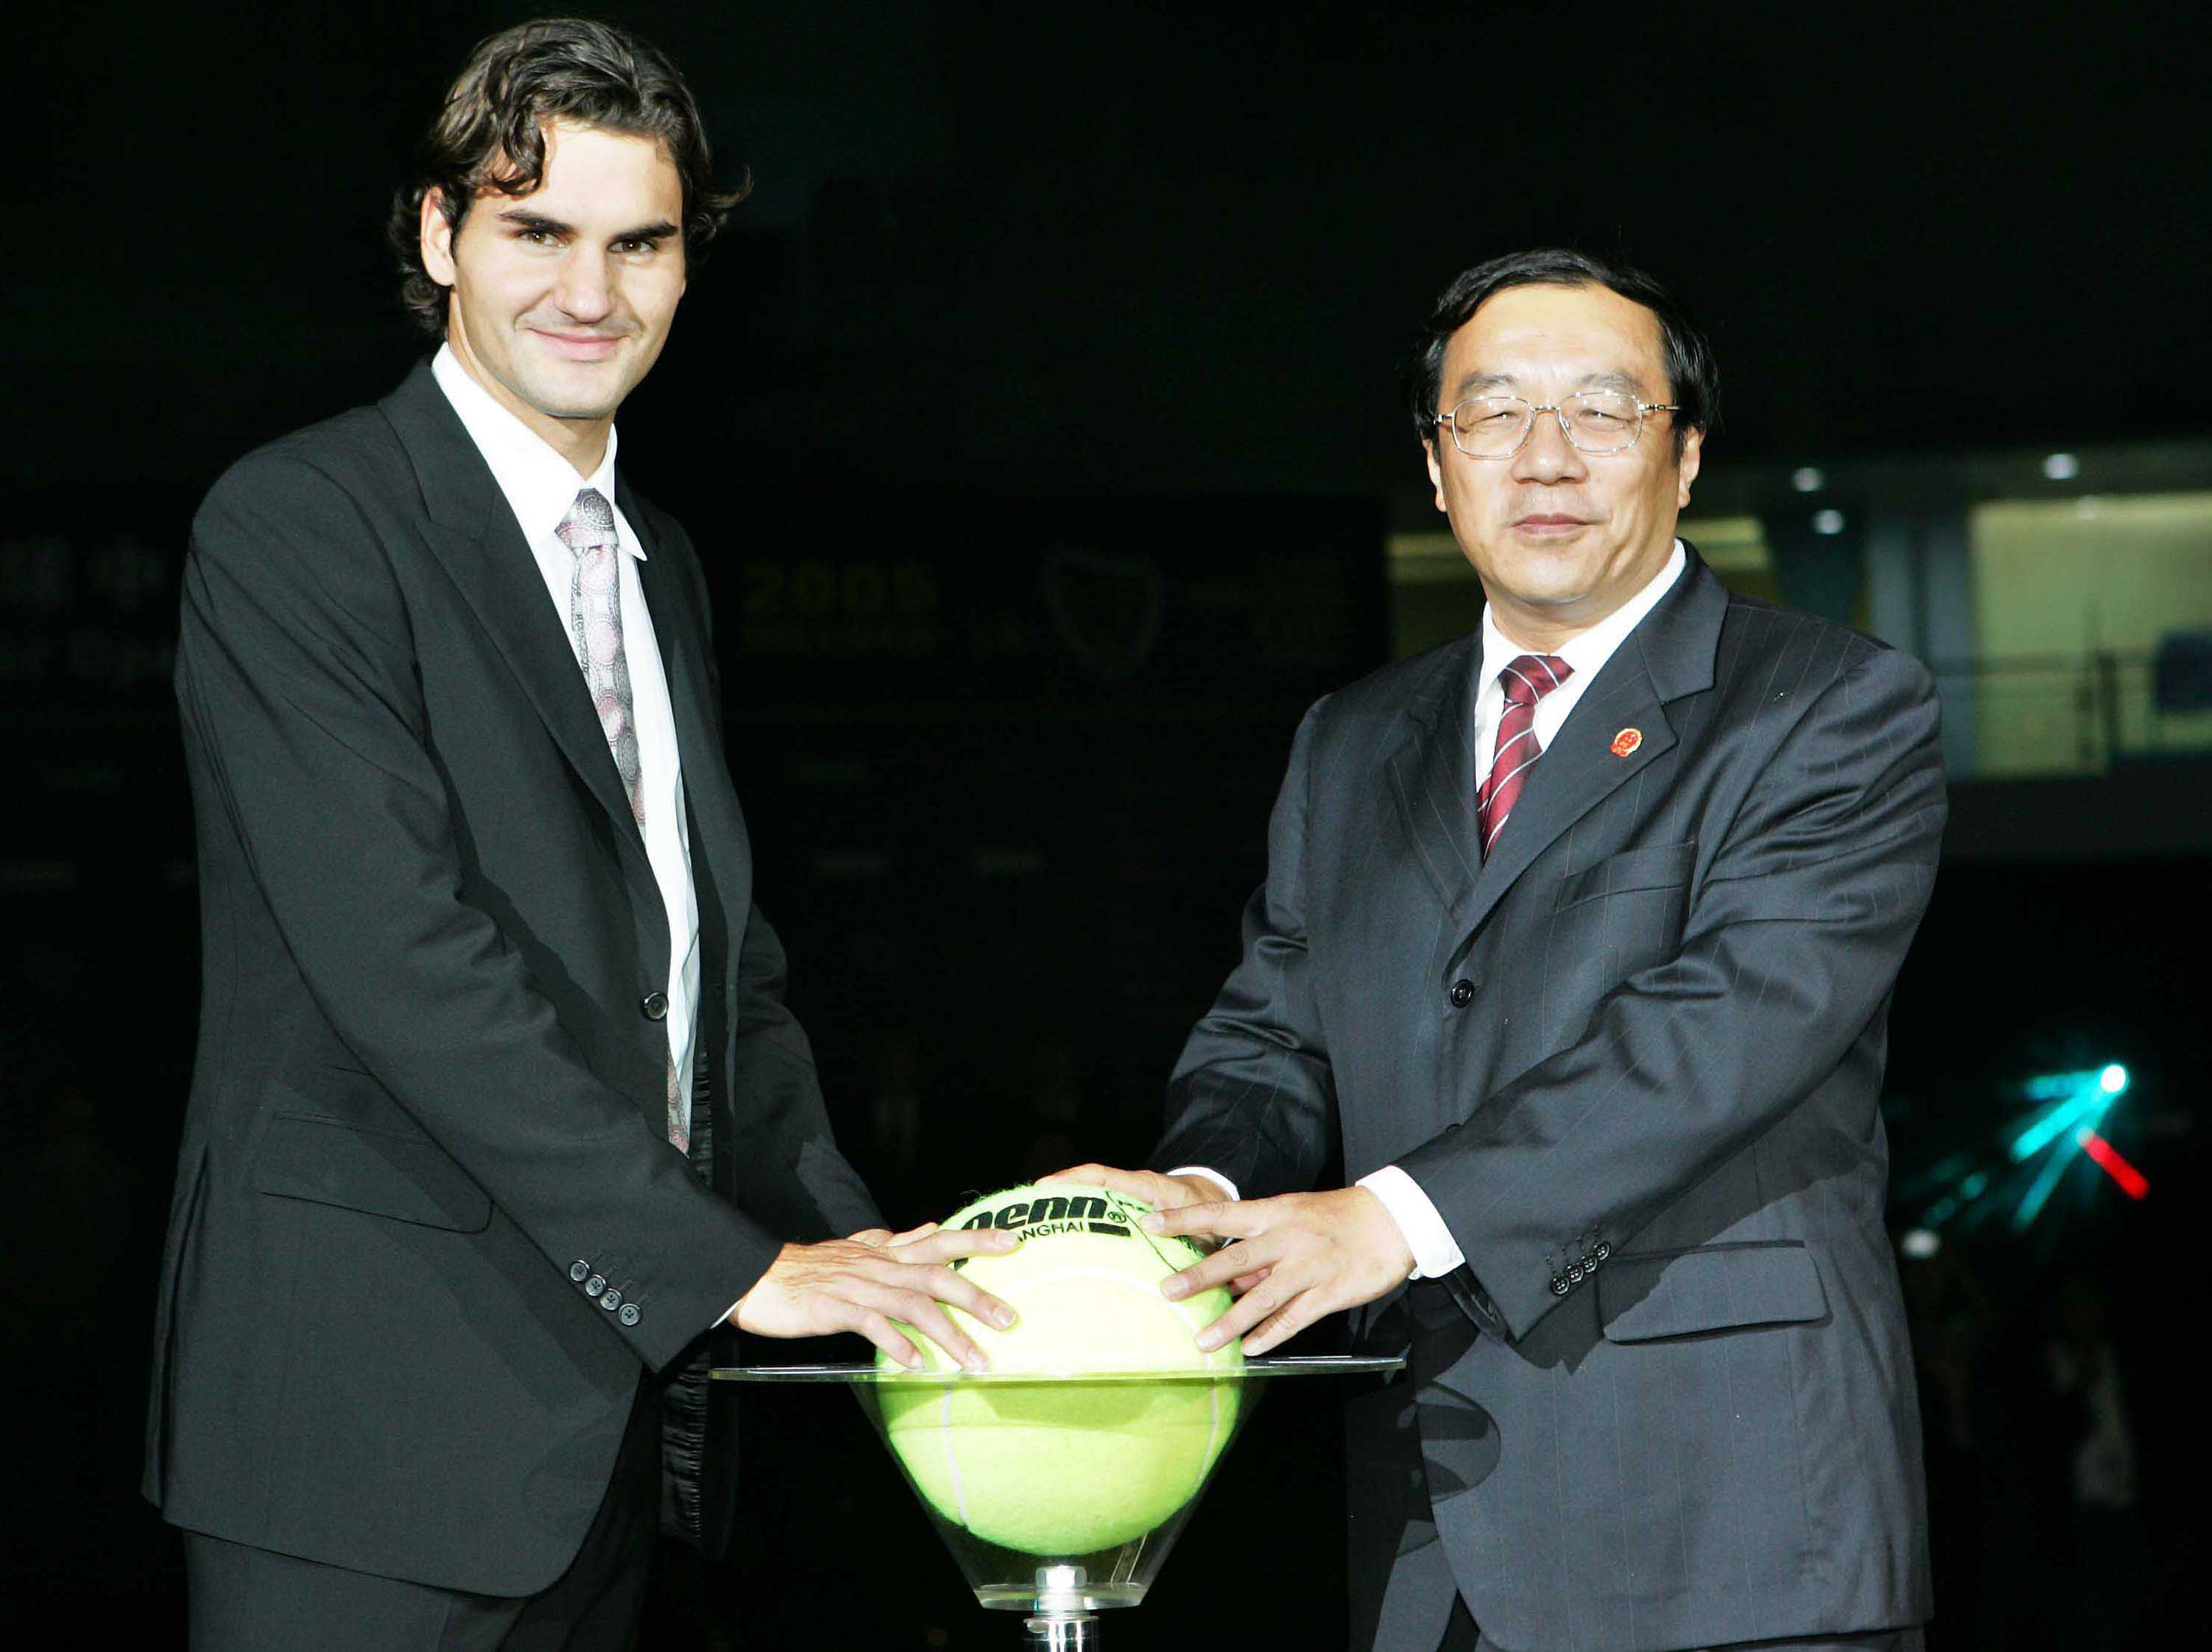 Federer helps to open the venue.